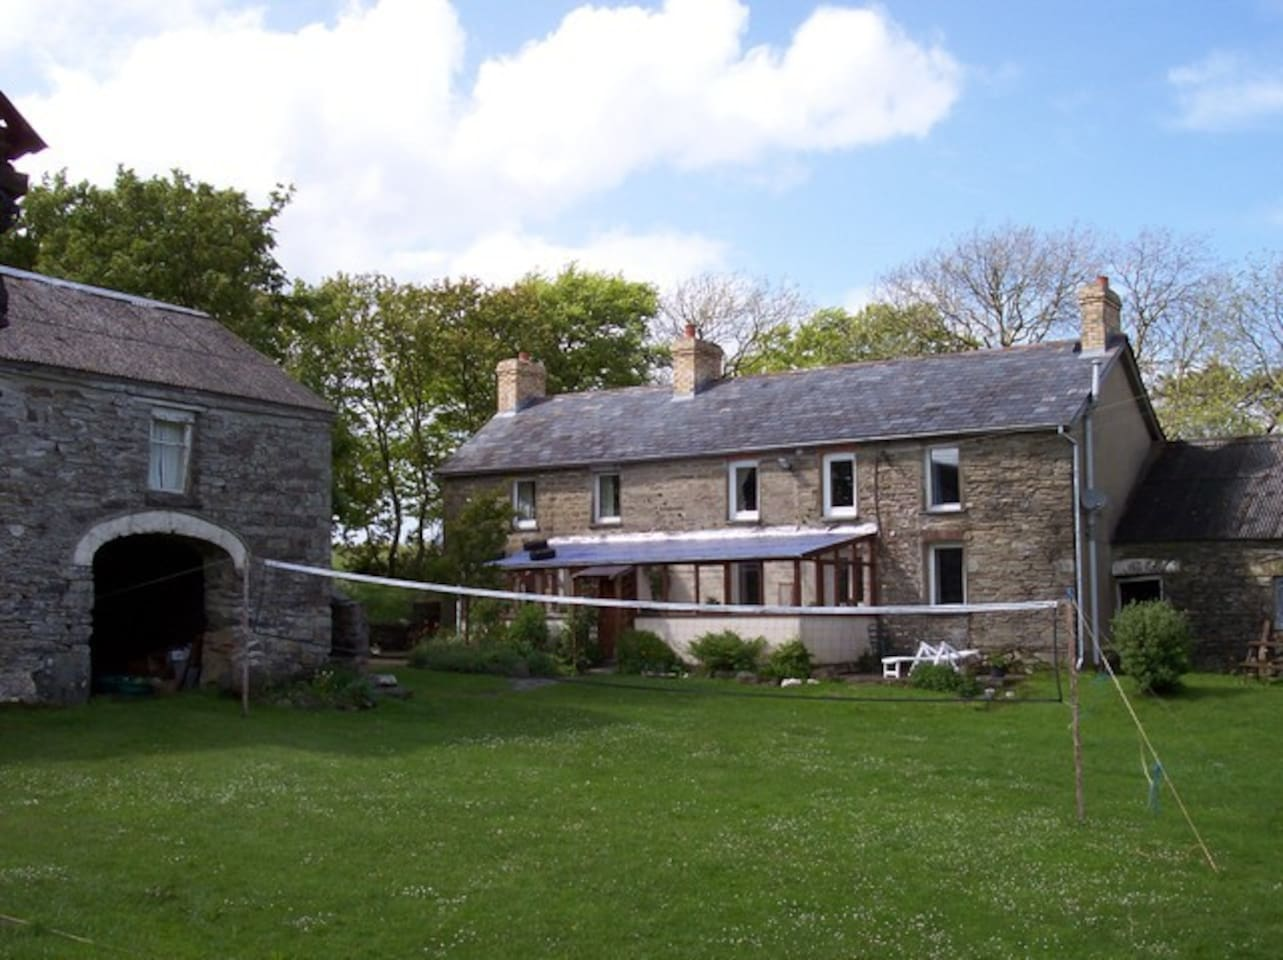 The House-we are always up for volleyball in the summer.